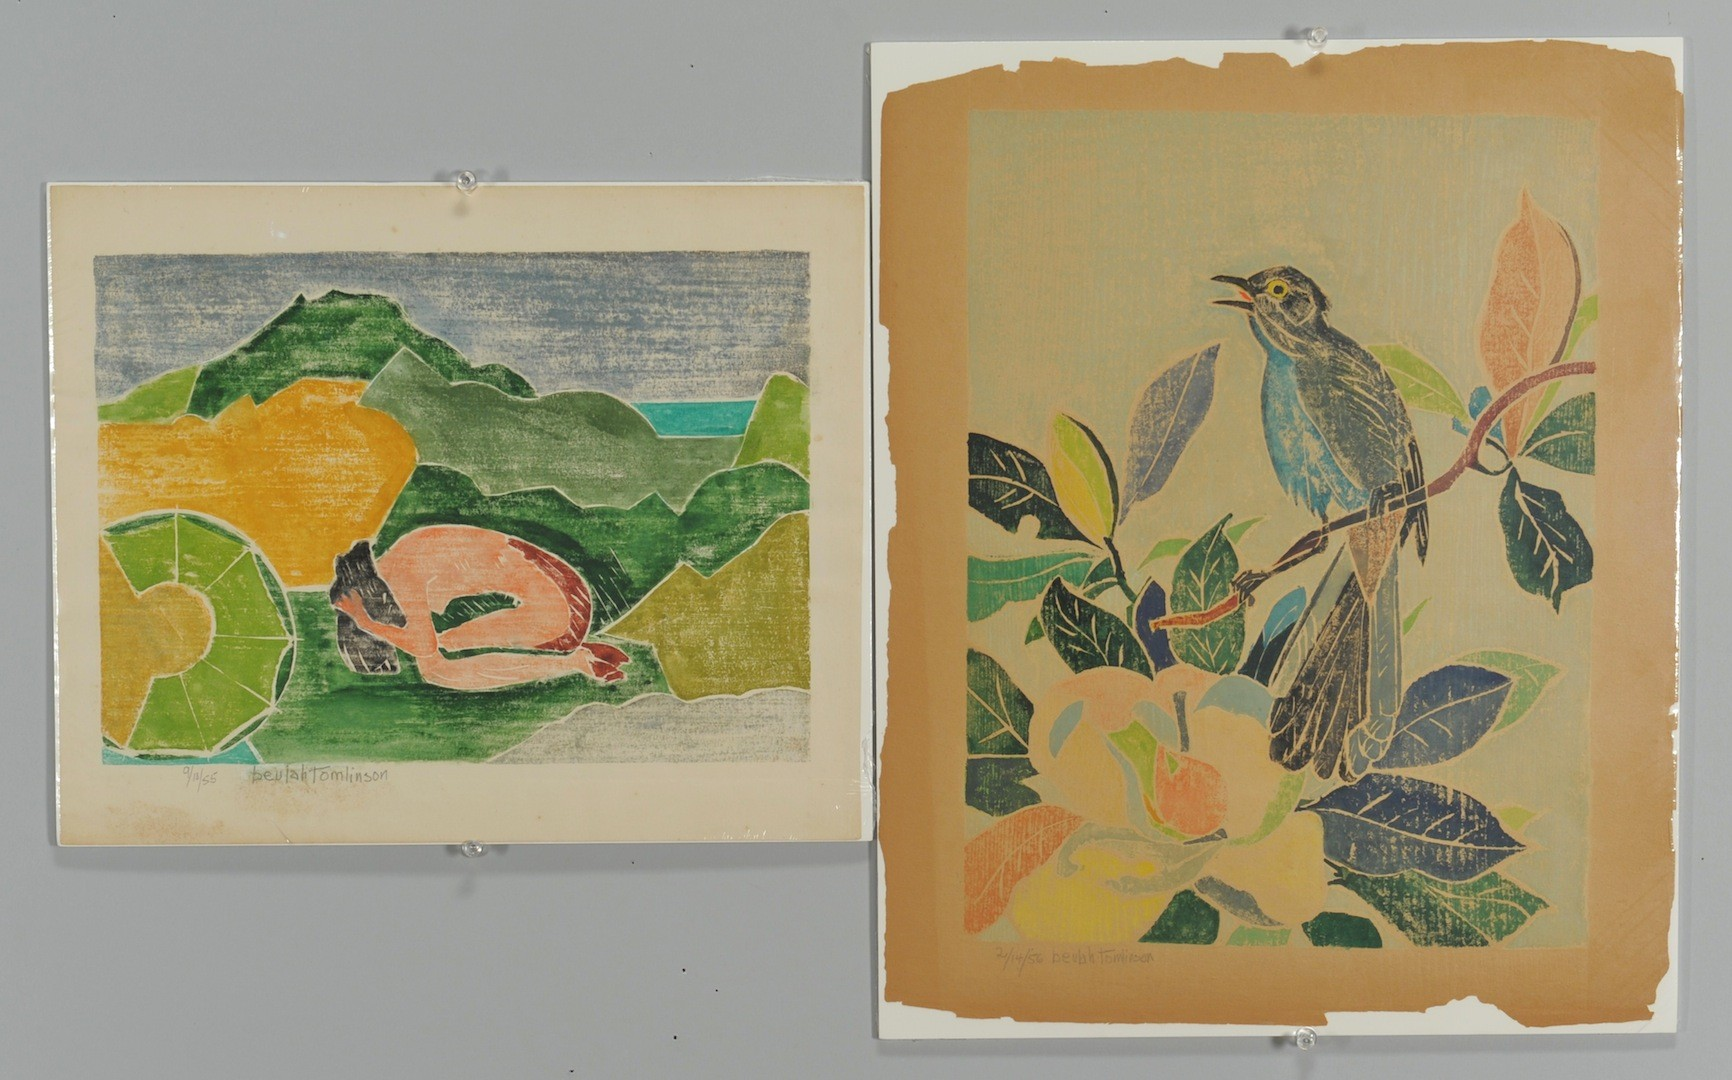 Lot __ Inv. #4181: 2 Beulah Tomlinson Wood Cut Block Prints: Bird and Crouching Nude